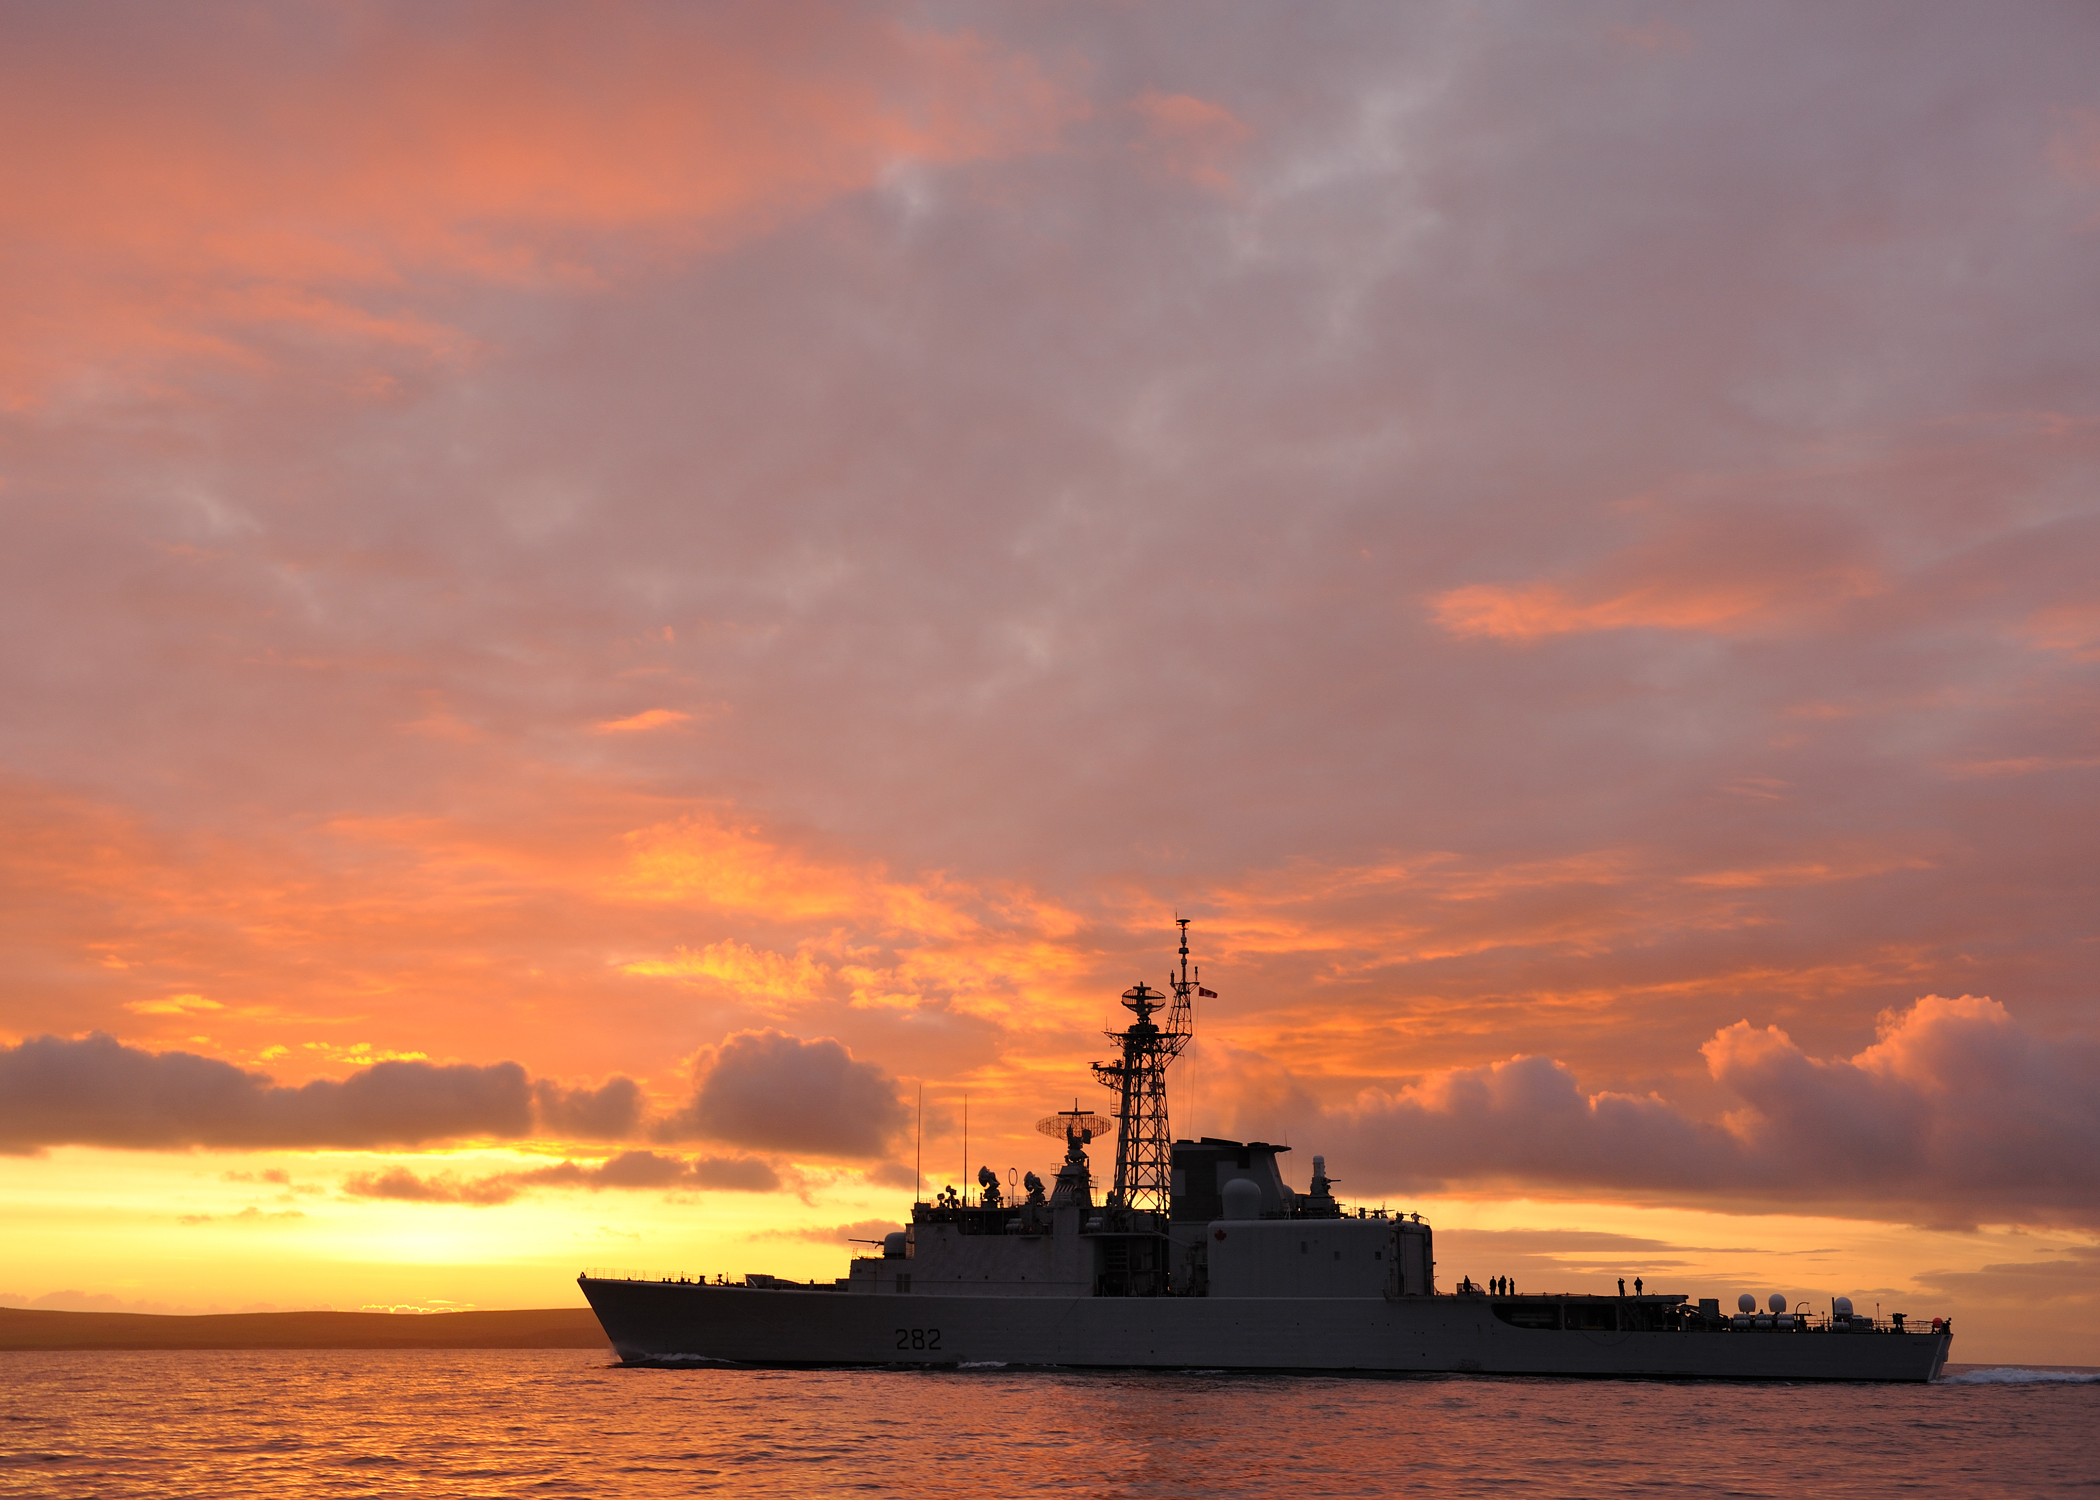 HMCS Athabaskan sailing towards the Scapa Flows off Scotland in 2009. Sailing into the sunset, Athabaskan, Canada's last serving destroyer, was paid off in Halifax on March 10, 2017. Built in the early 1970s, the RCN had four Iroquois-class destroyers in service at one time. Now, the RCN must wait a decade for the CSC, the fleet's replacement, to enter service. (cpl chris ringius, formation imaging service)